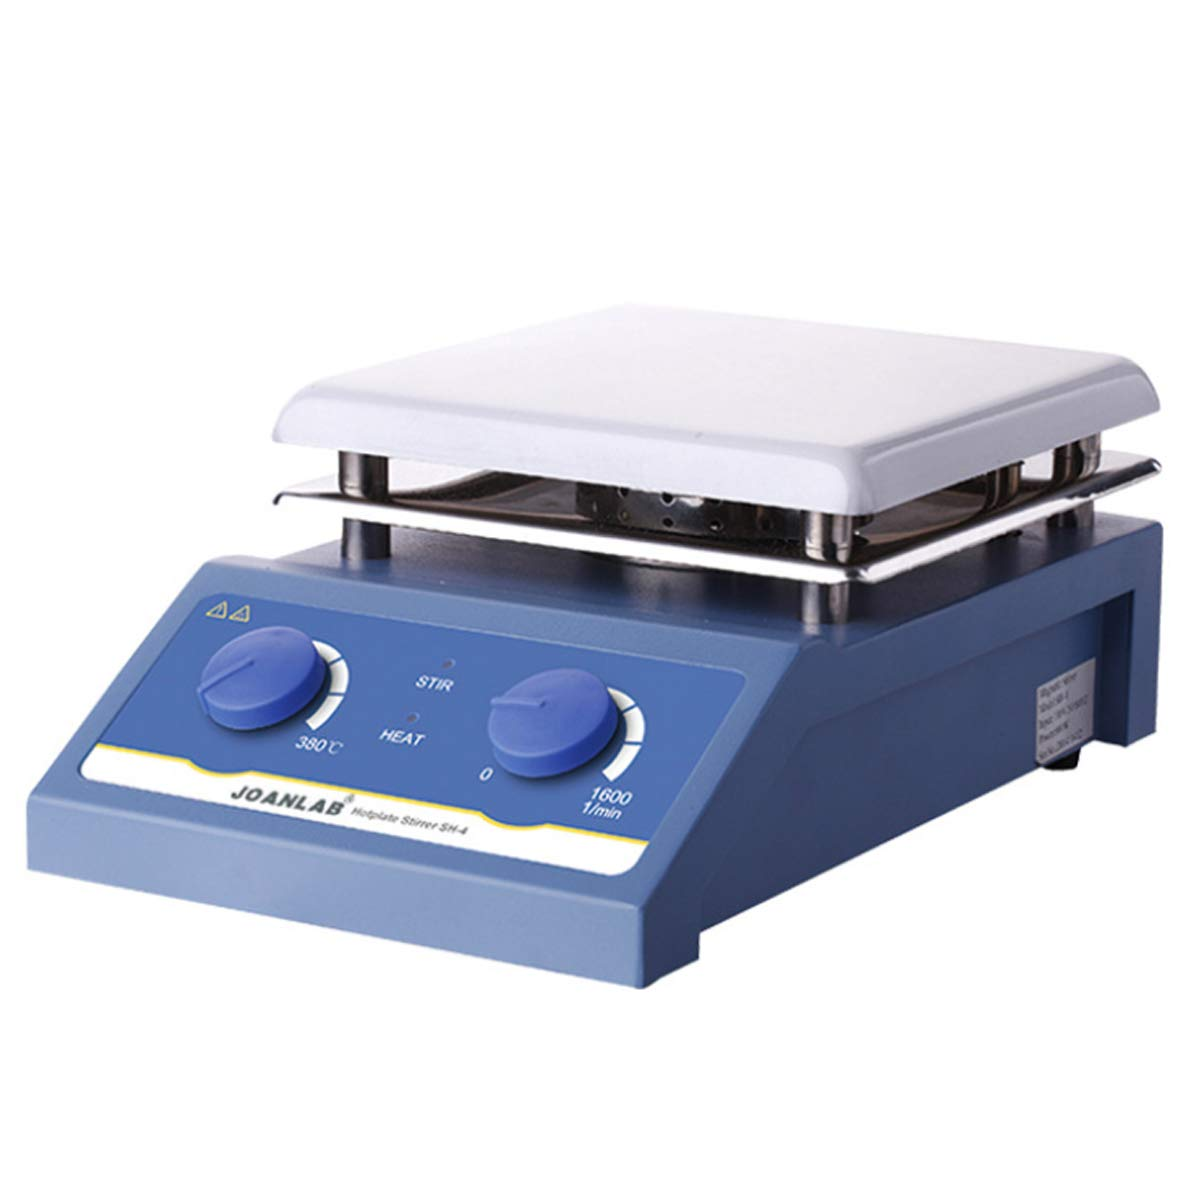 DreamLab 1-5L Magnetic Stirrer 180-600W Heating Magnetic Mixer Max Stirring 1600rpm Hot Plate with Stir Bar HS-12/17/19 (5L)